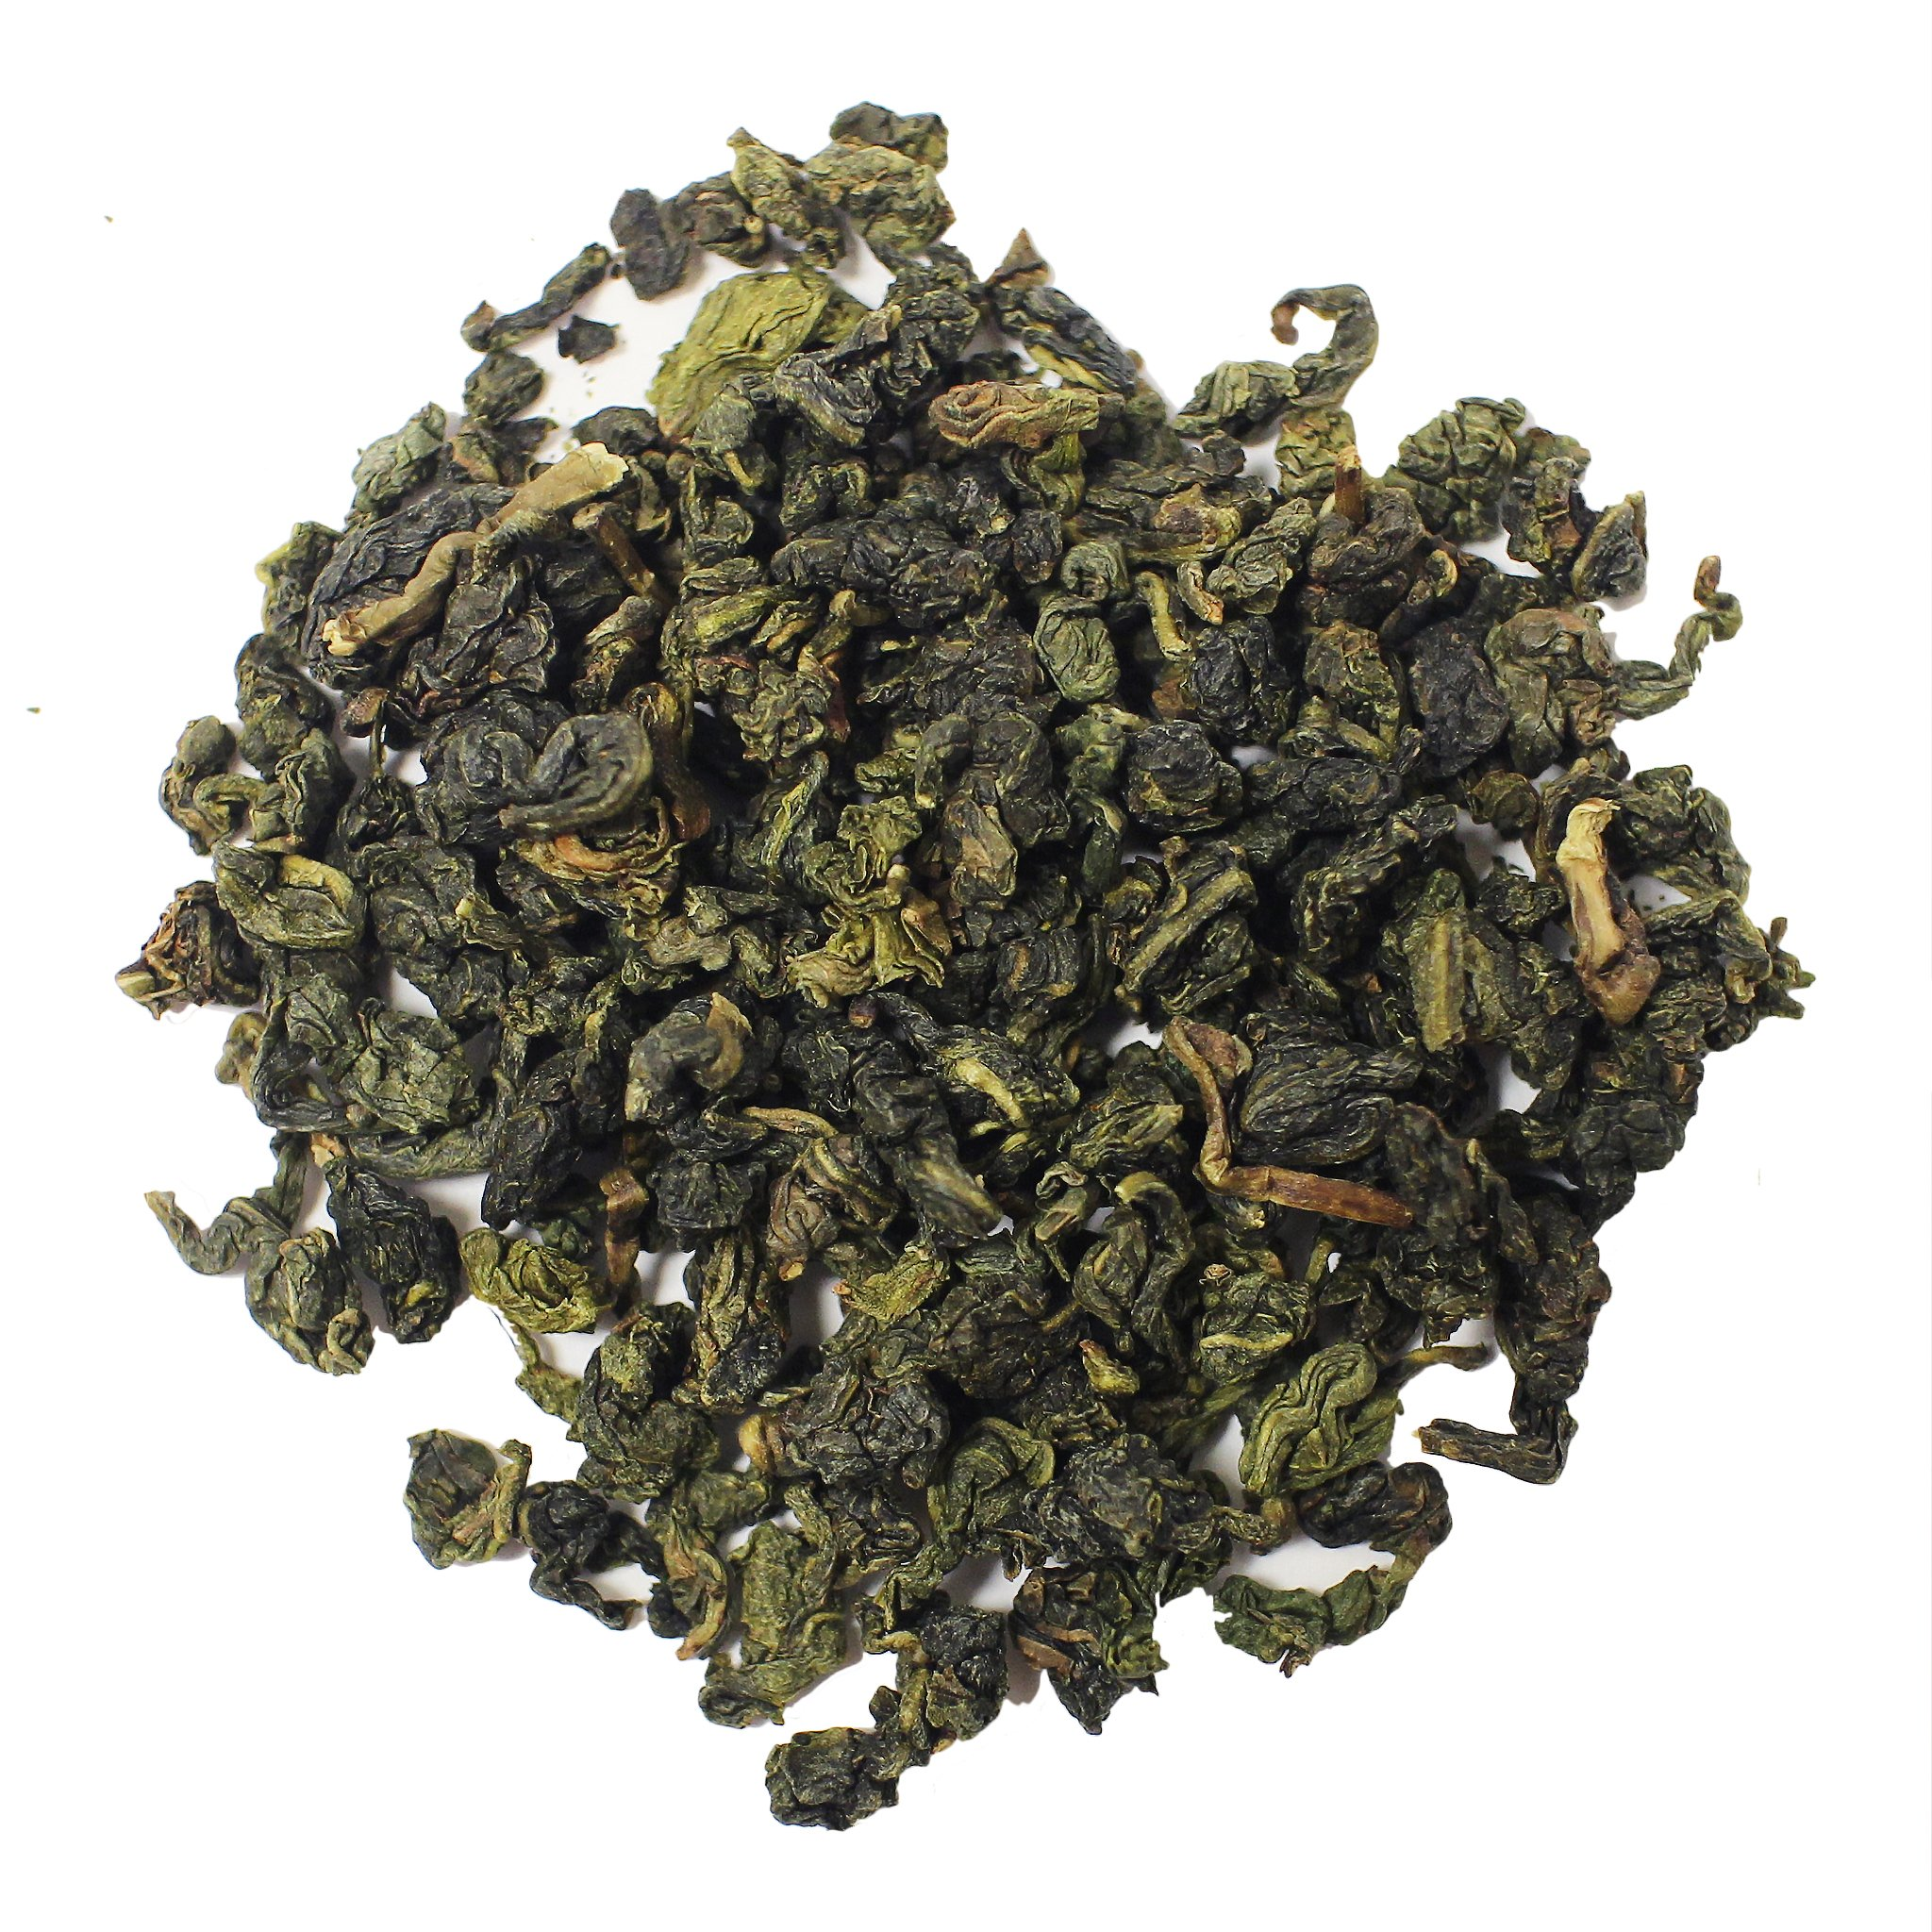 The Tea Farm - Huang Jin Gui Oolong Tea - Loose Leaf Oolong Tea (8 Ounce Bag) by The Tea Farm